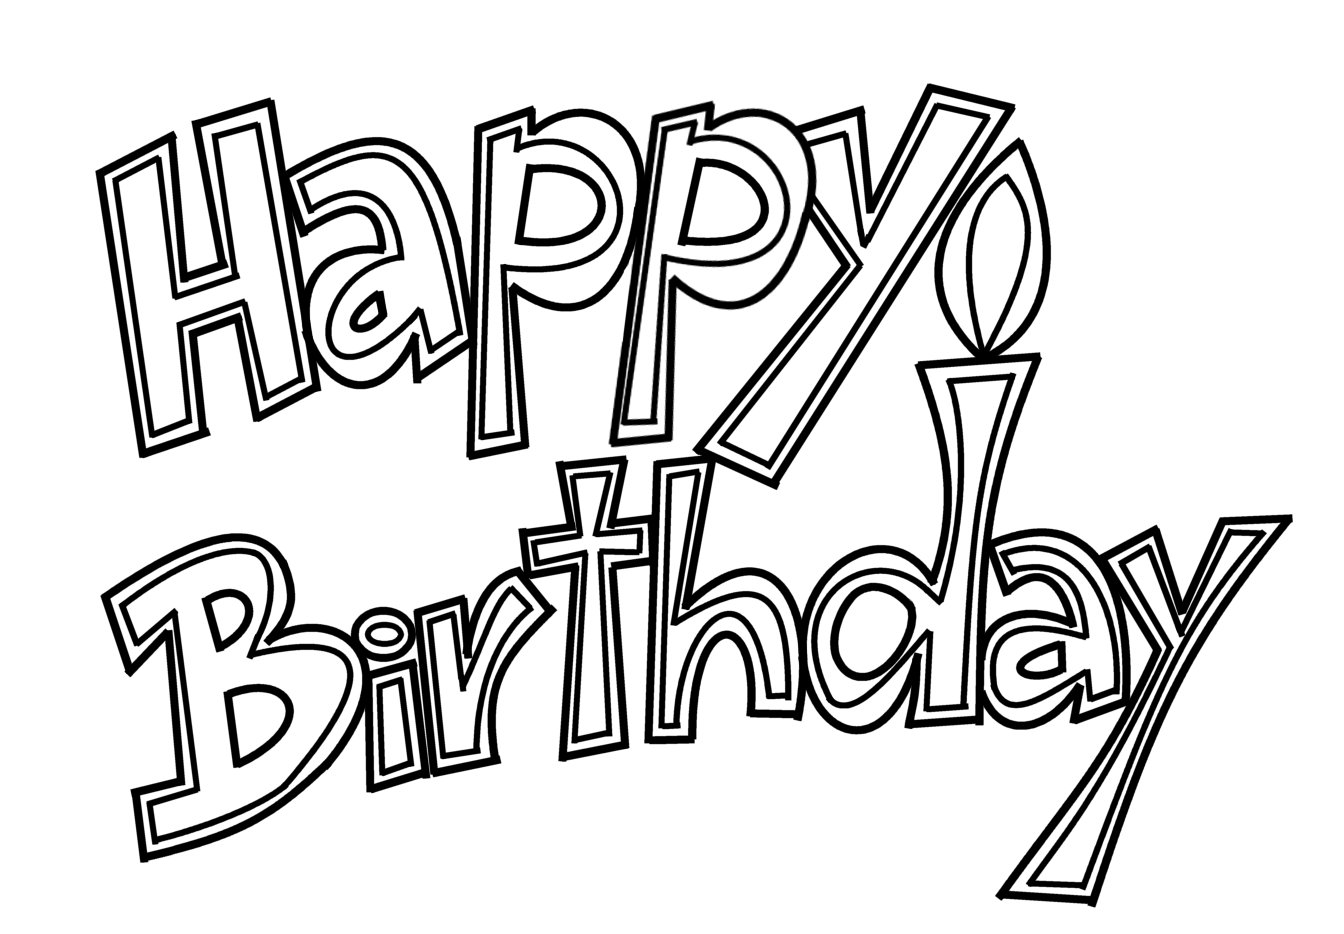 happy birthday design drawing ; F%252B61%252BHappy%252BBirthday